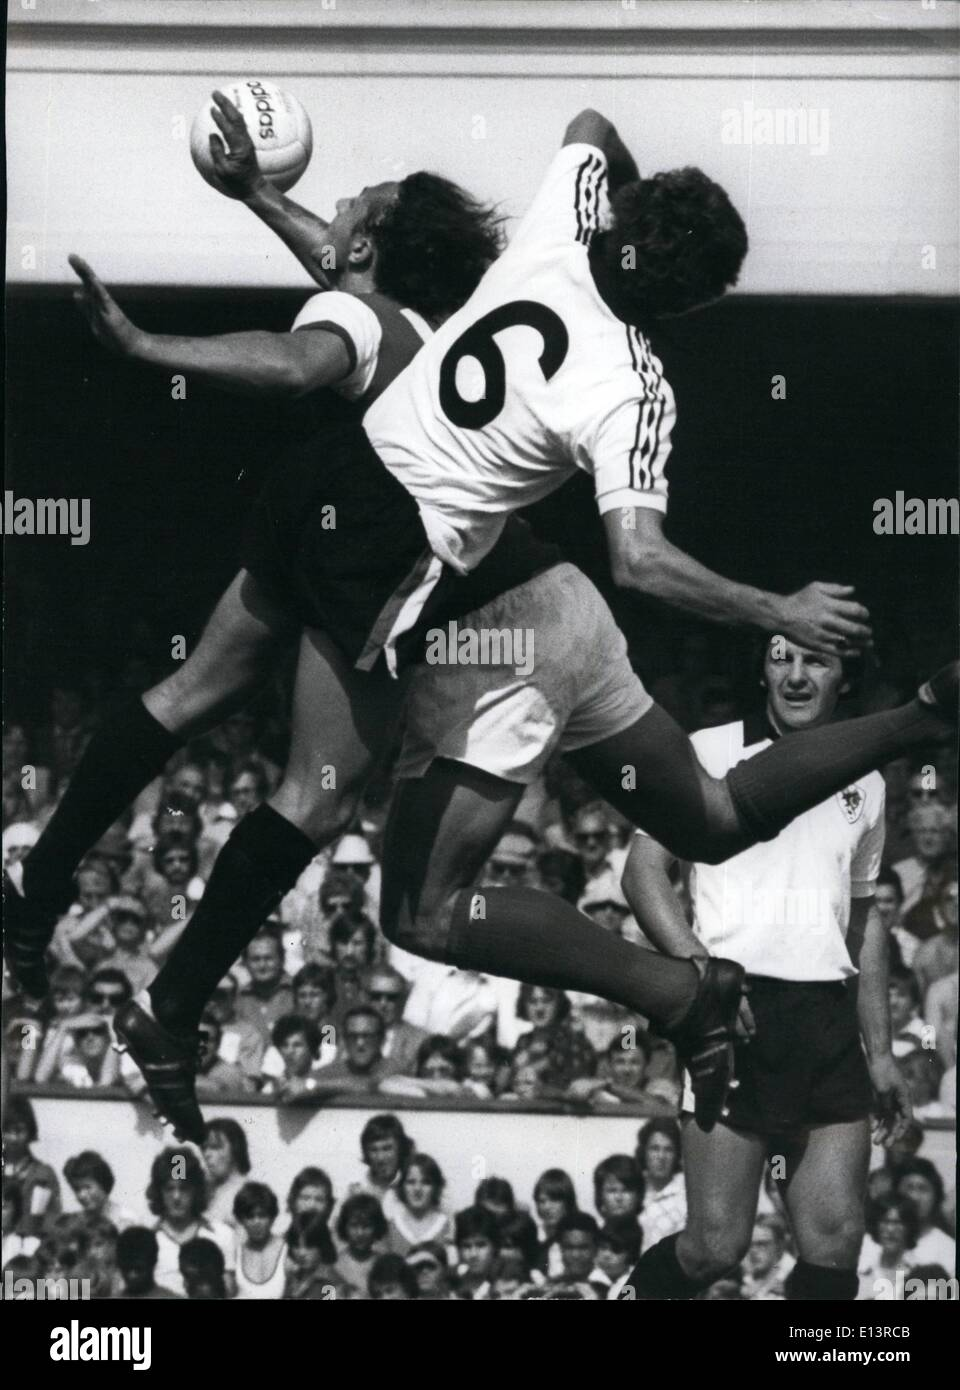 Mar. 27, 2012 - Reaching for it Gracefully: Geoff Kerrick of Bristol City does a ballet-style leap for the ball at the same time as Arsenal's John Radford, during a match at Highbury. - Stock Image